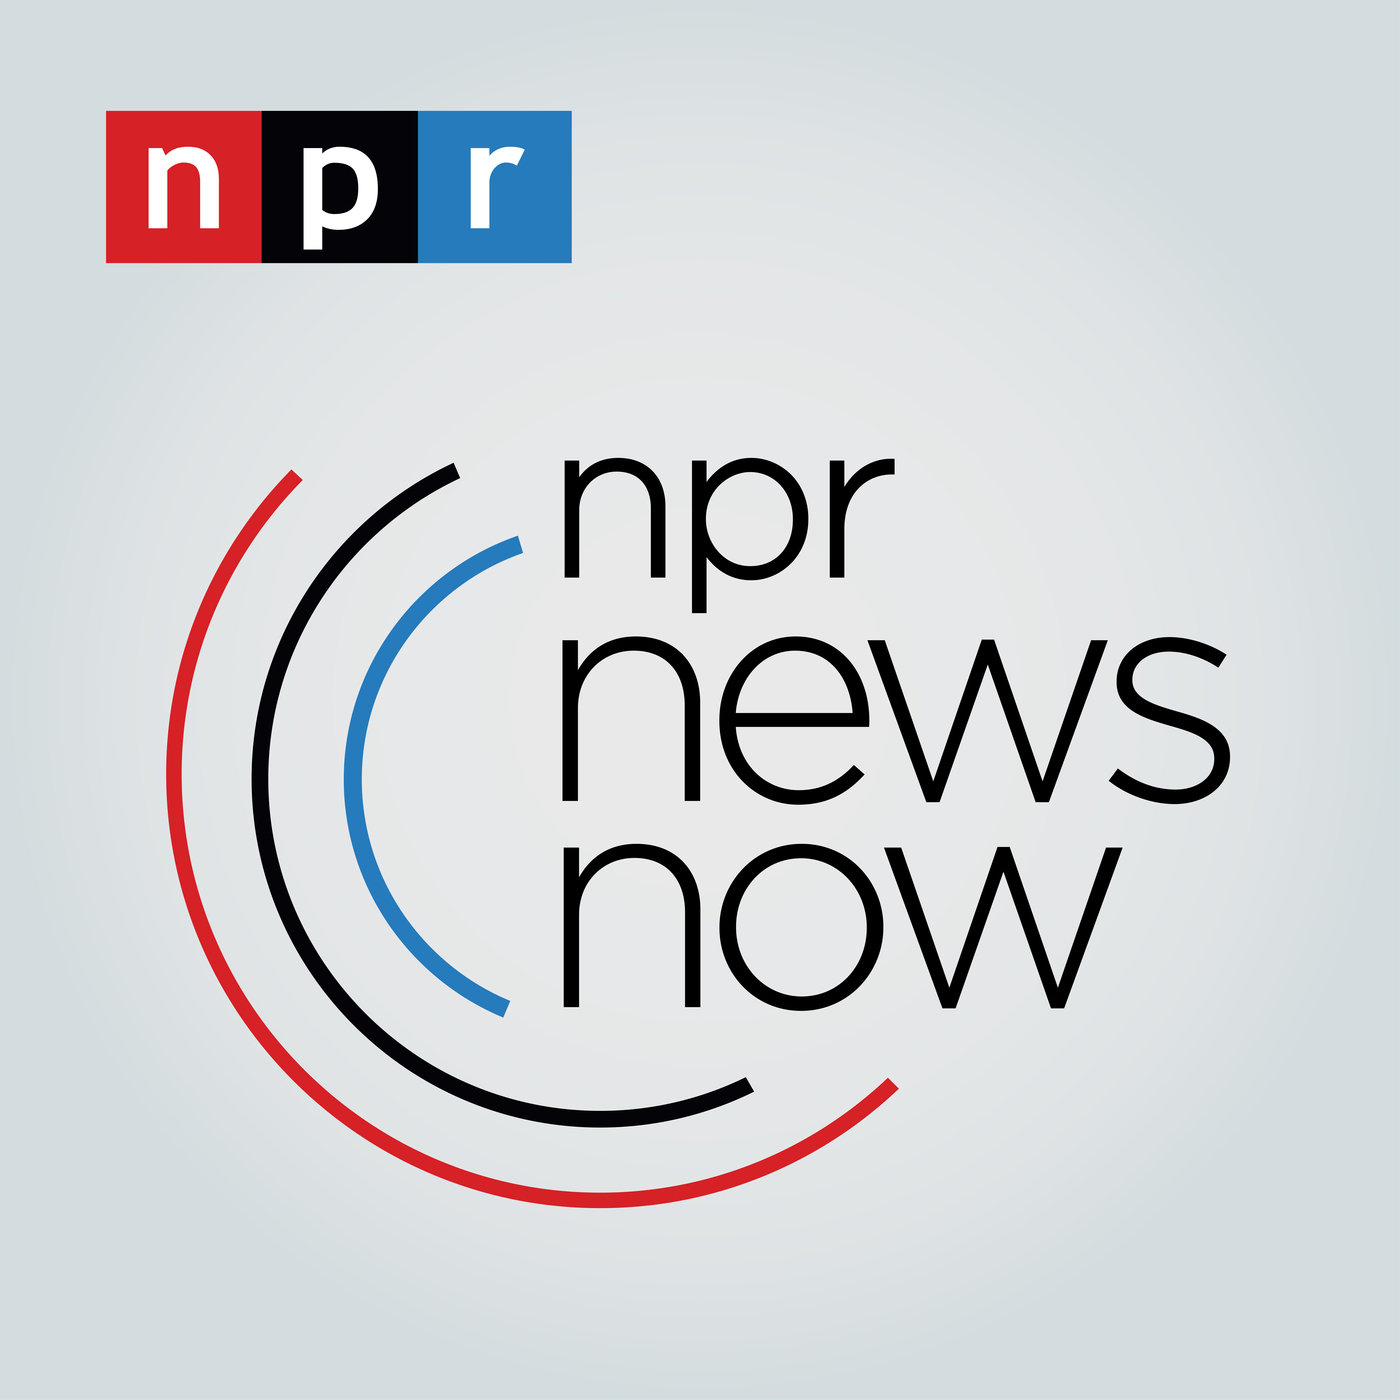 Syria, Starbucks and Camille Higham discussed on NPR News Now